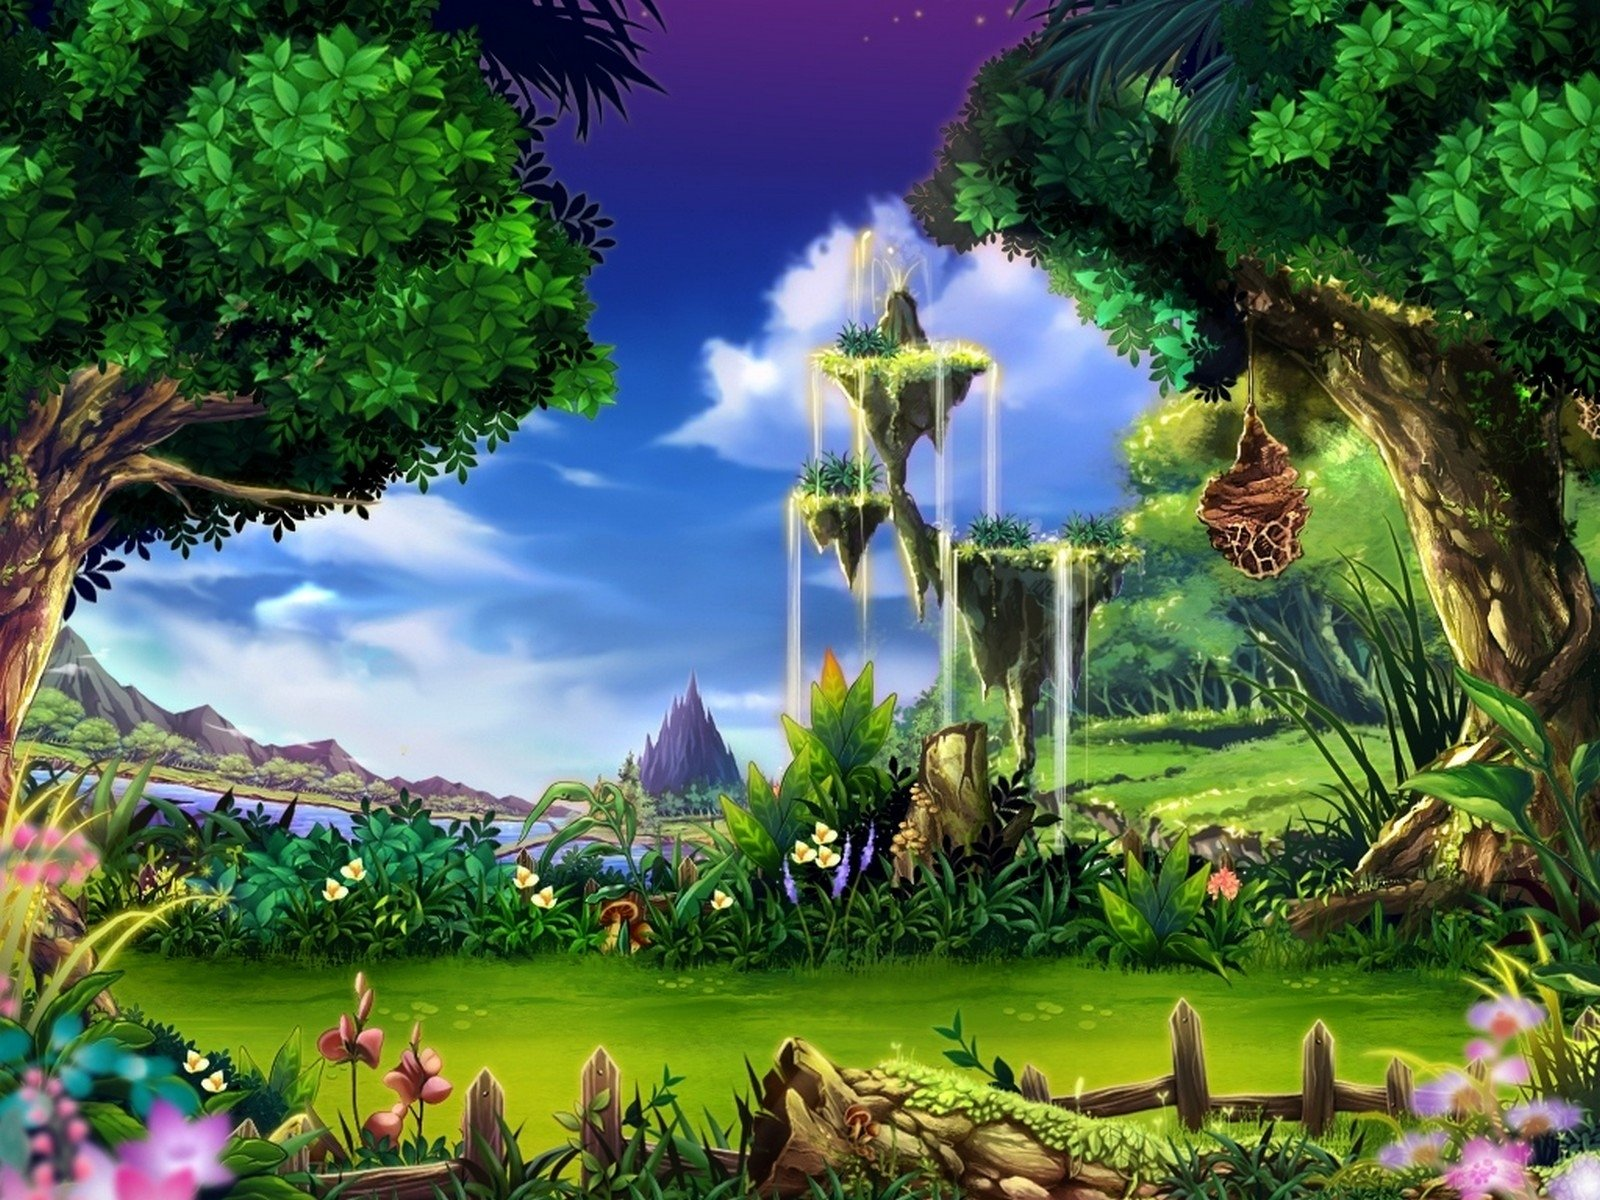 Wallpapers ID:296475